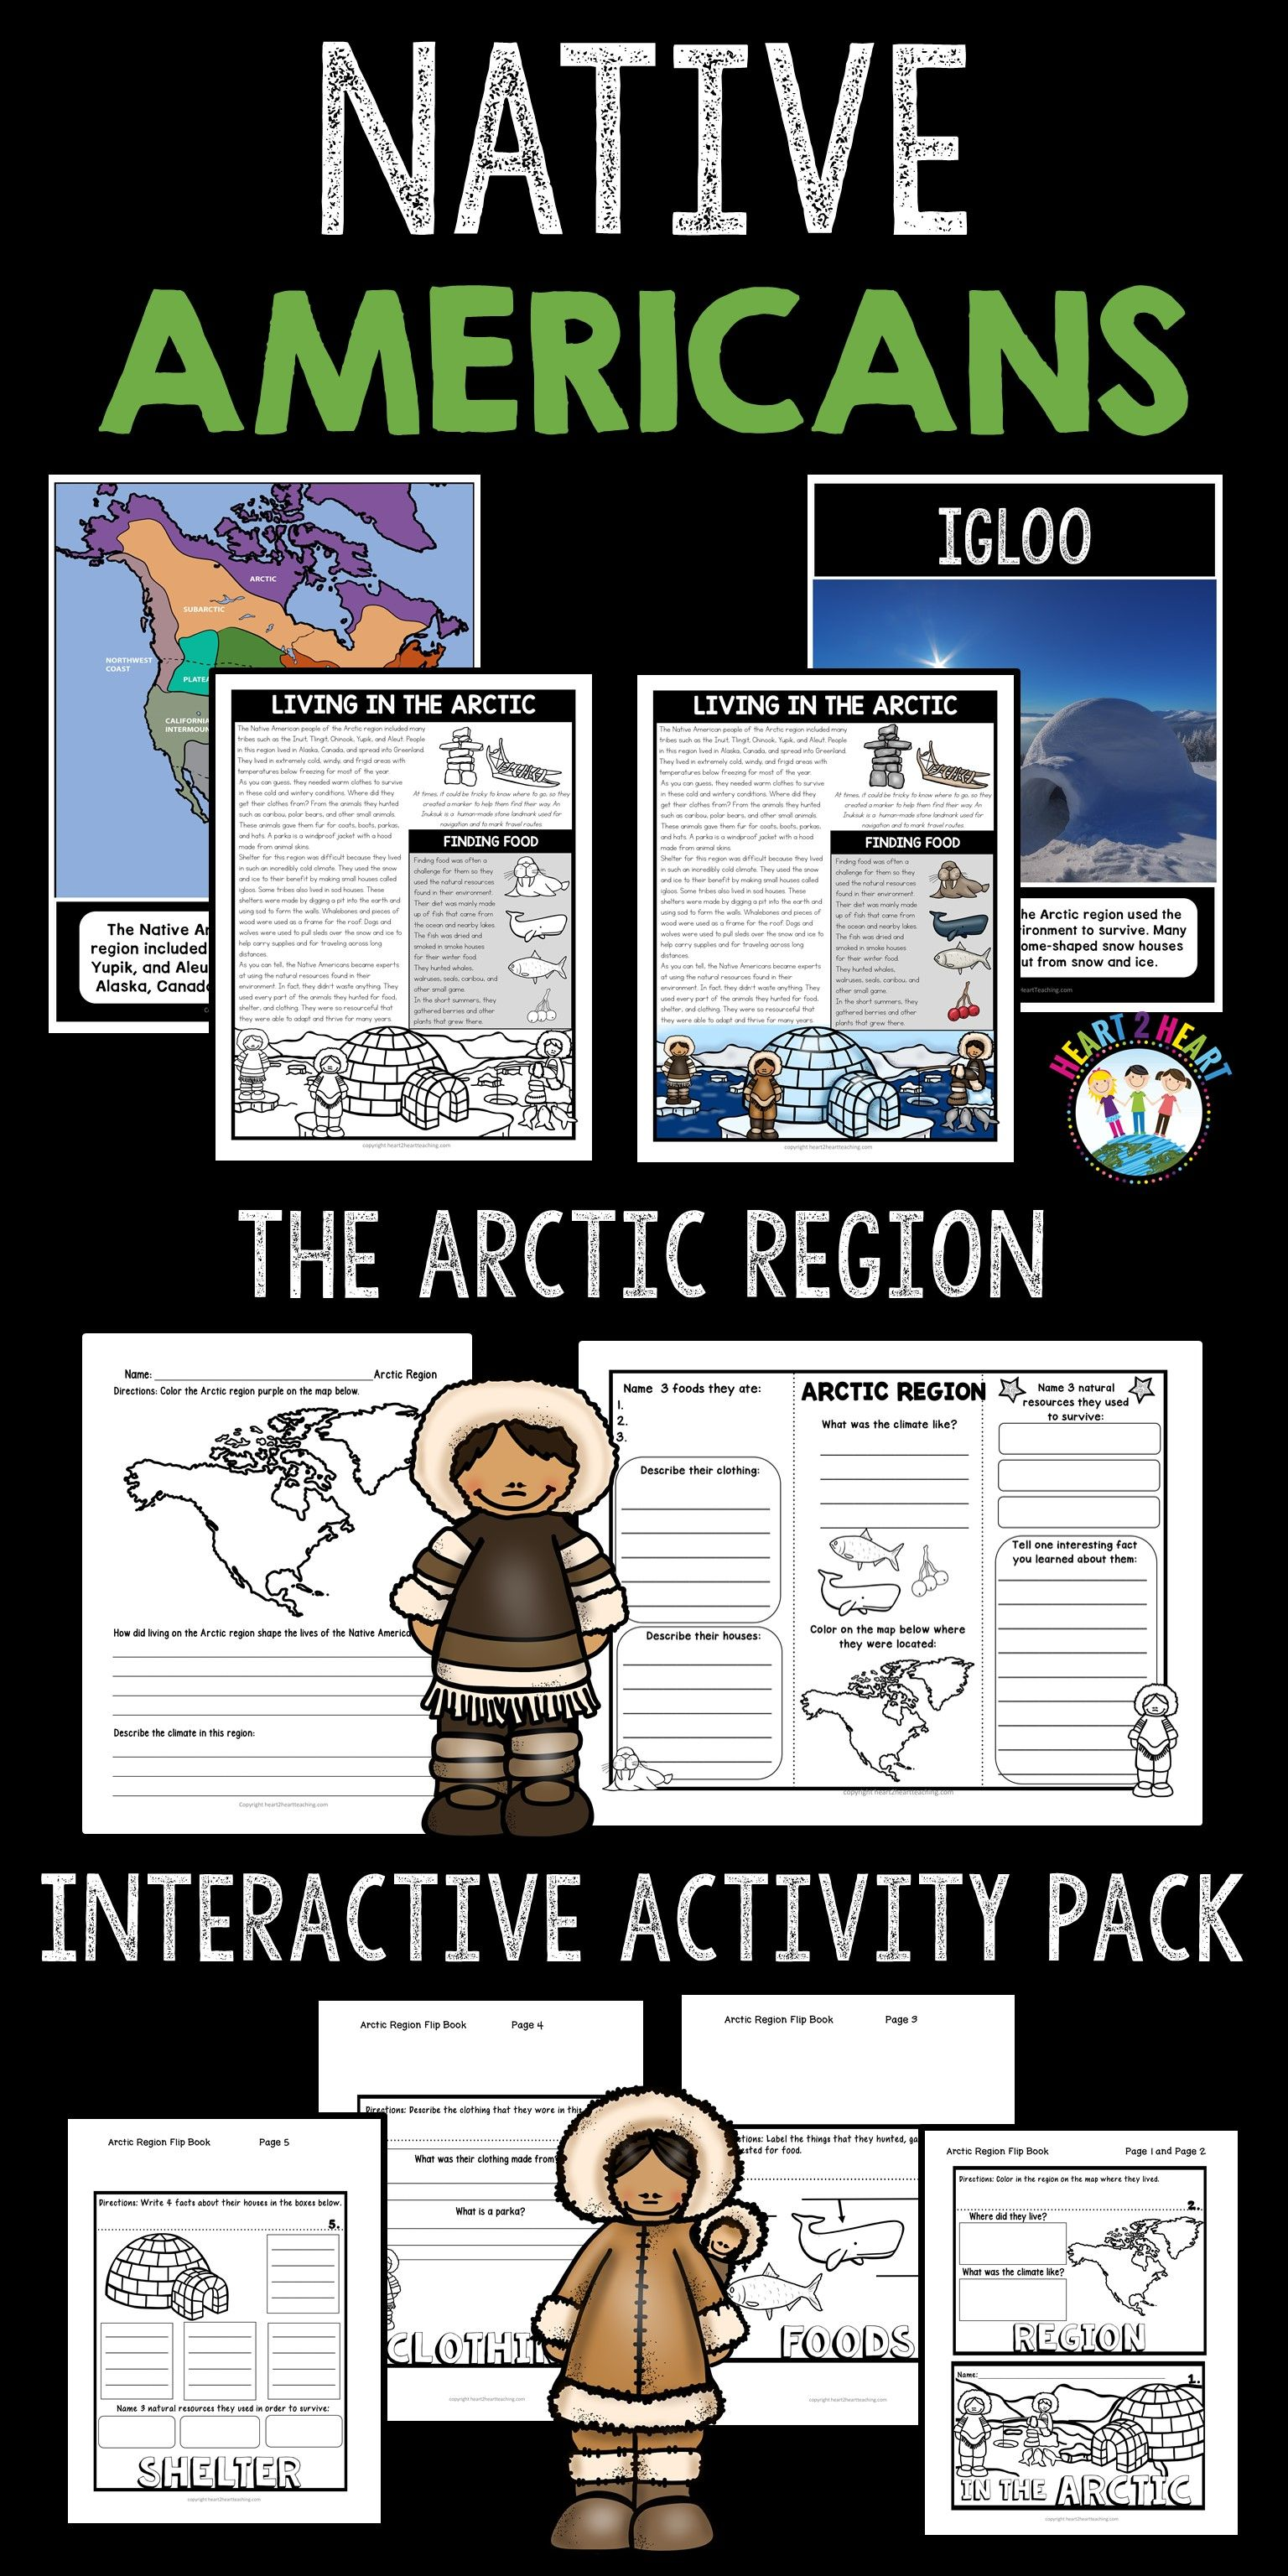 Native Americans That Lived In The Arctic Region